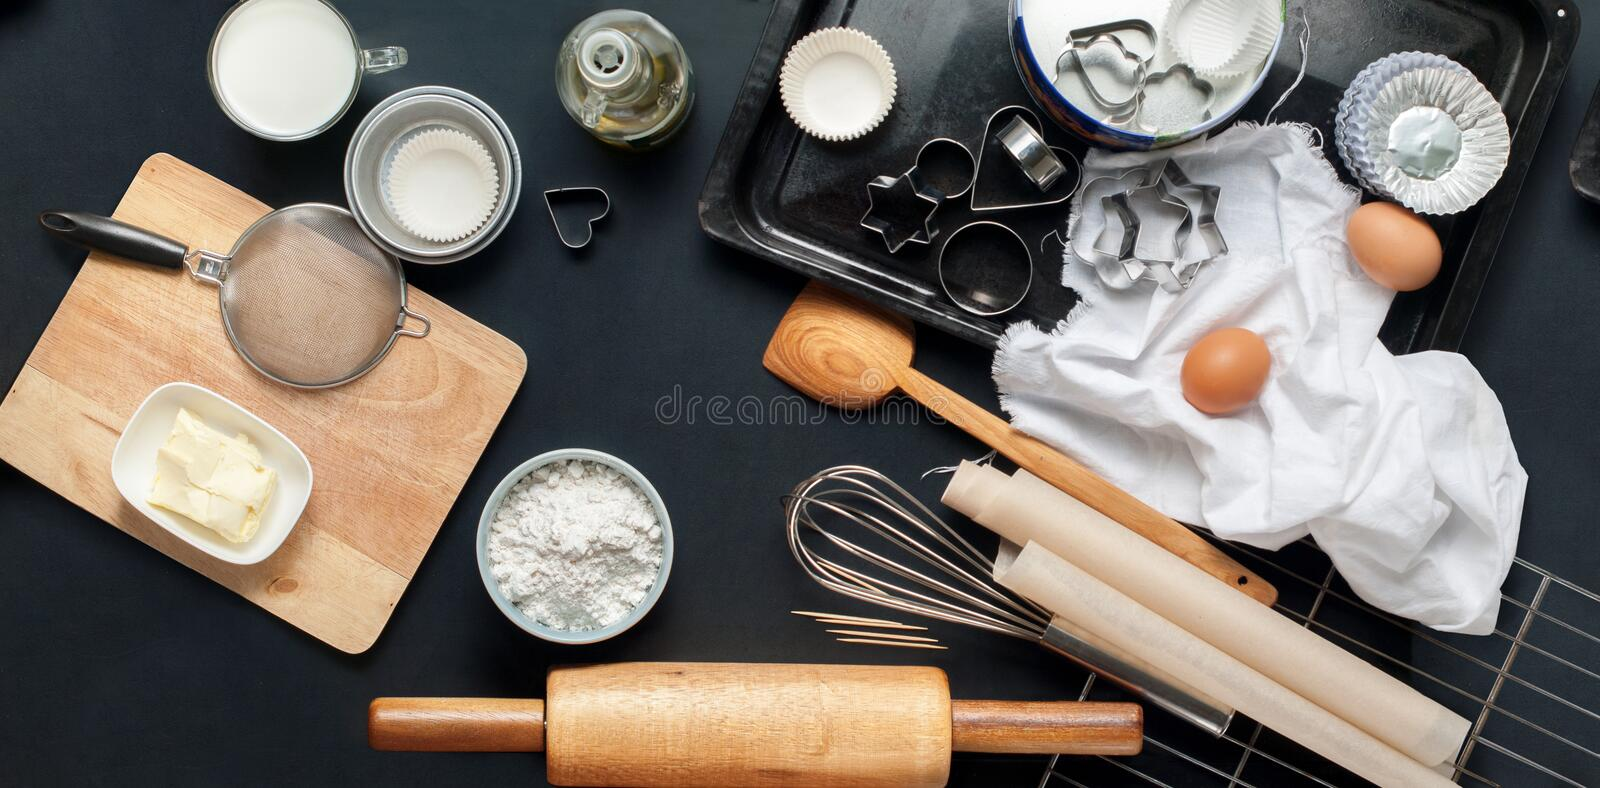 Baking Accessories Kitchen Black Table Top Wooden. Preparation Baking Accessories Kitchen Composition Black Table Top Wooden Metal Dishes Table Ware Fresh stock image